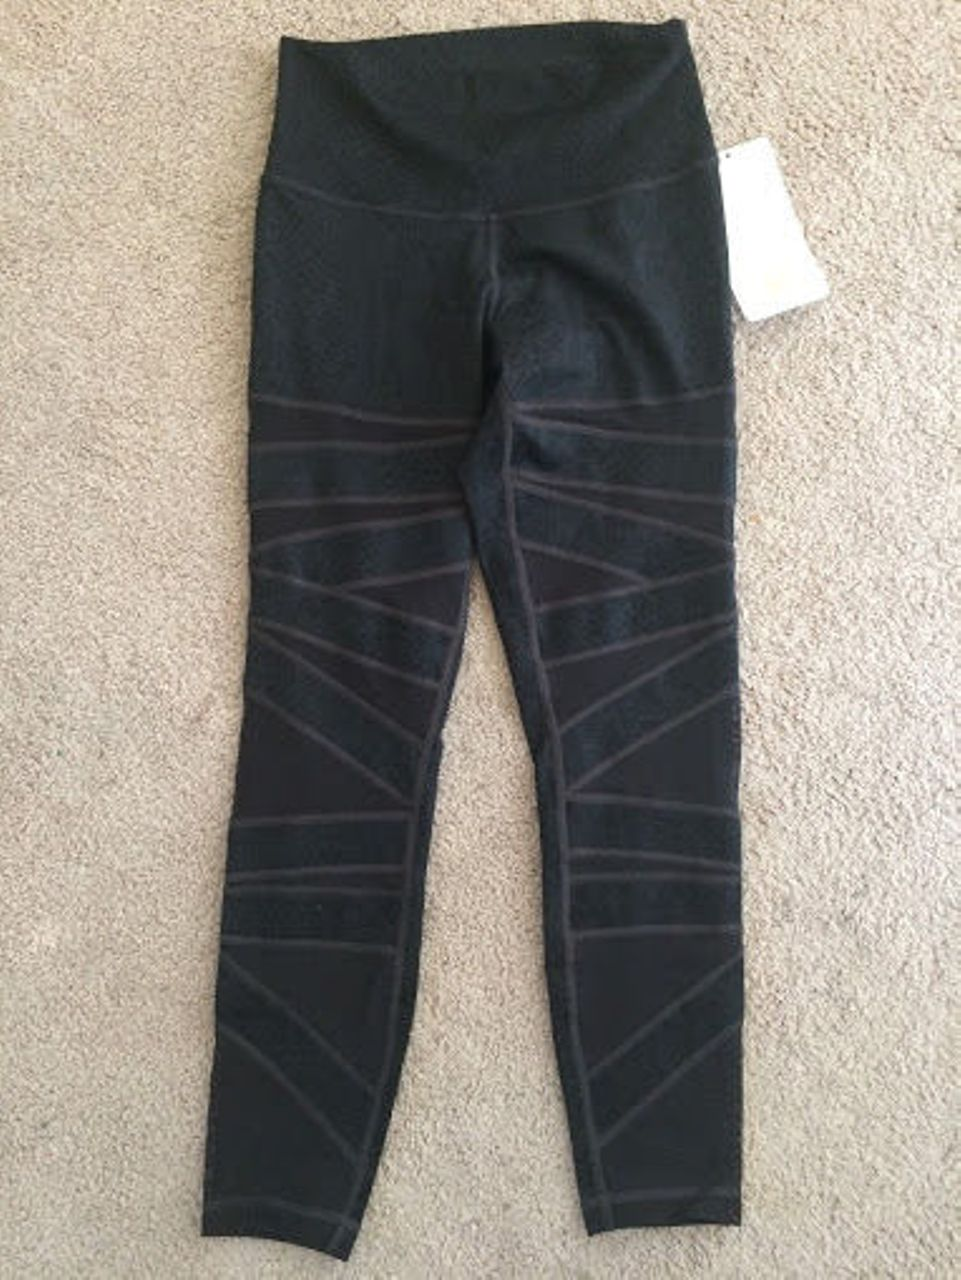 Lululemon High Times Pant *Tech Mesh - Desert Snake Deep Coal Black